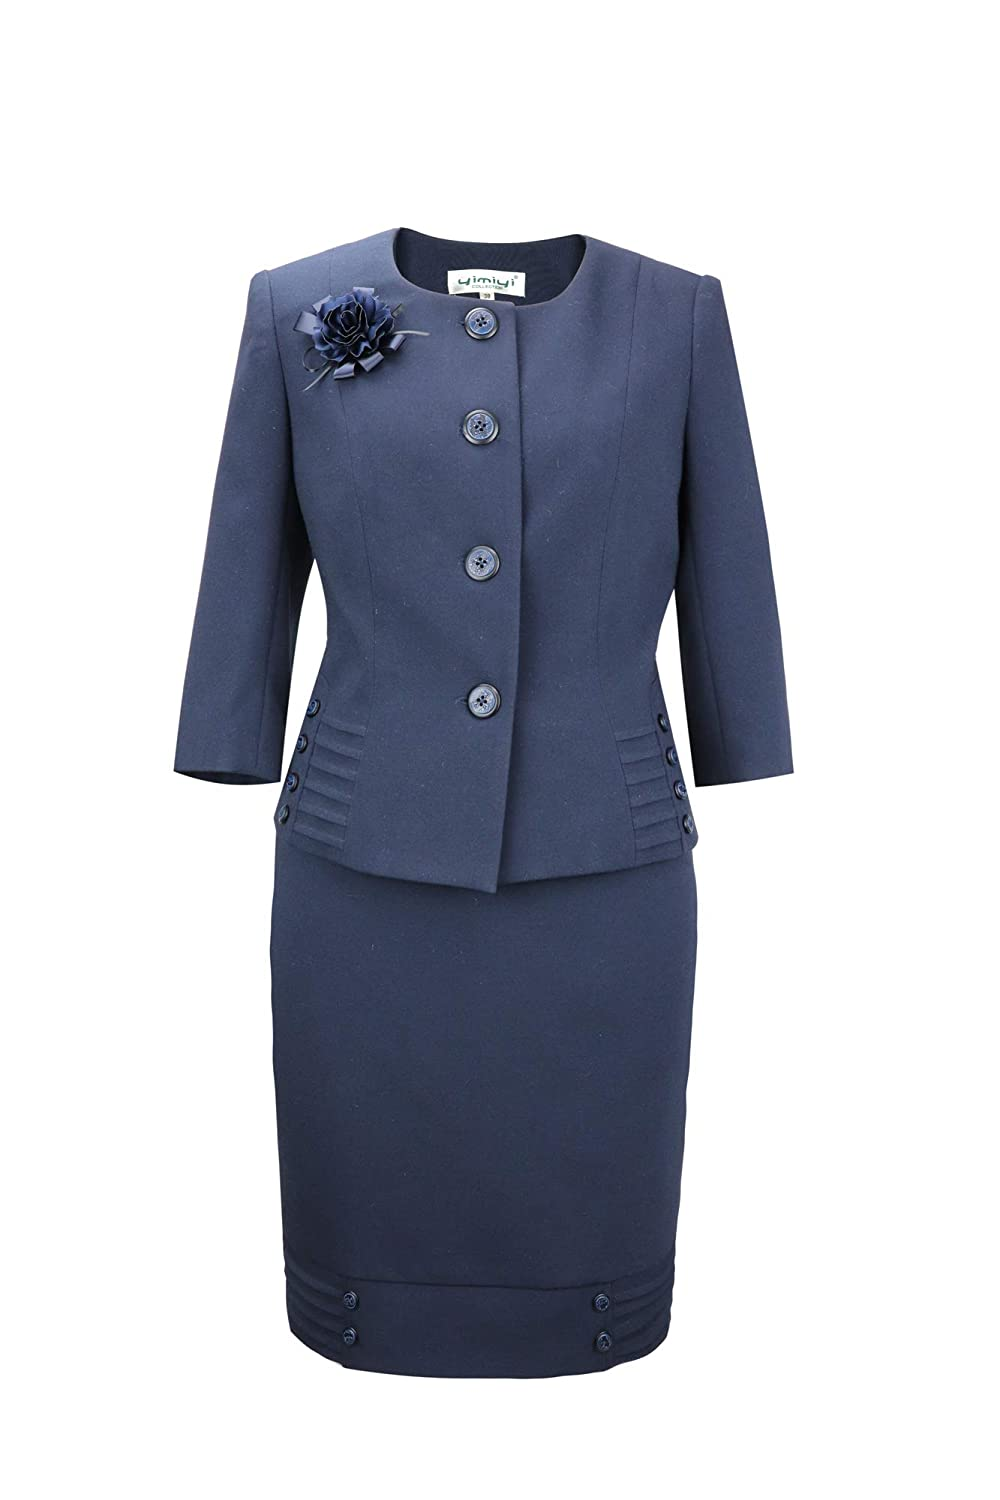 Vintage Suits Women | Work Wear & Office Wear yimiyi Womens Three Quarter Sleeve Plus Size Business Clothing Two-Piece Skirt Sets $63.89 AT vintagedancer.com